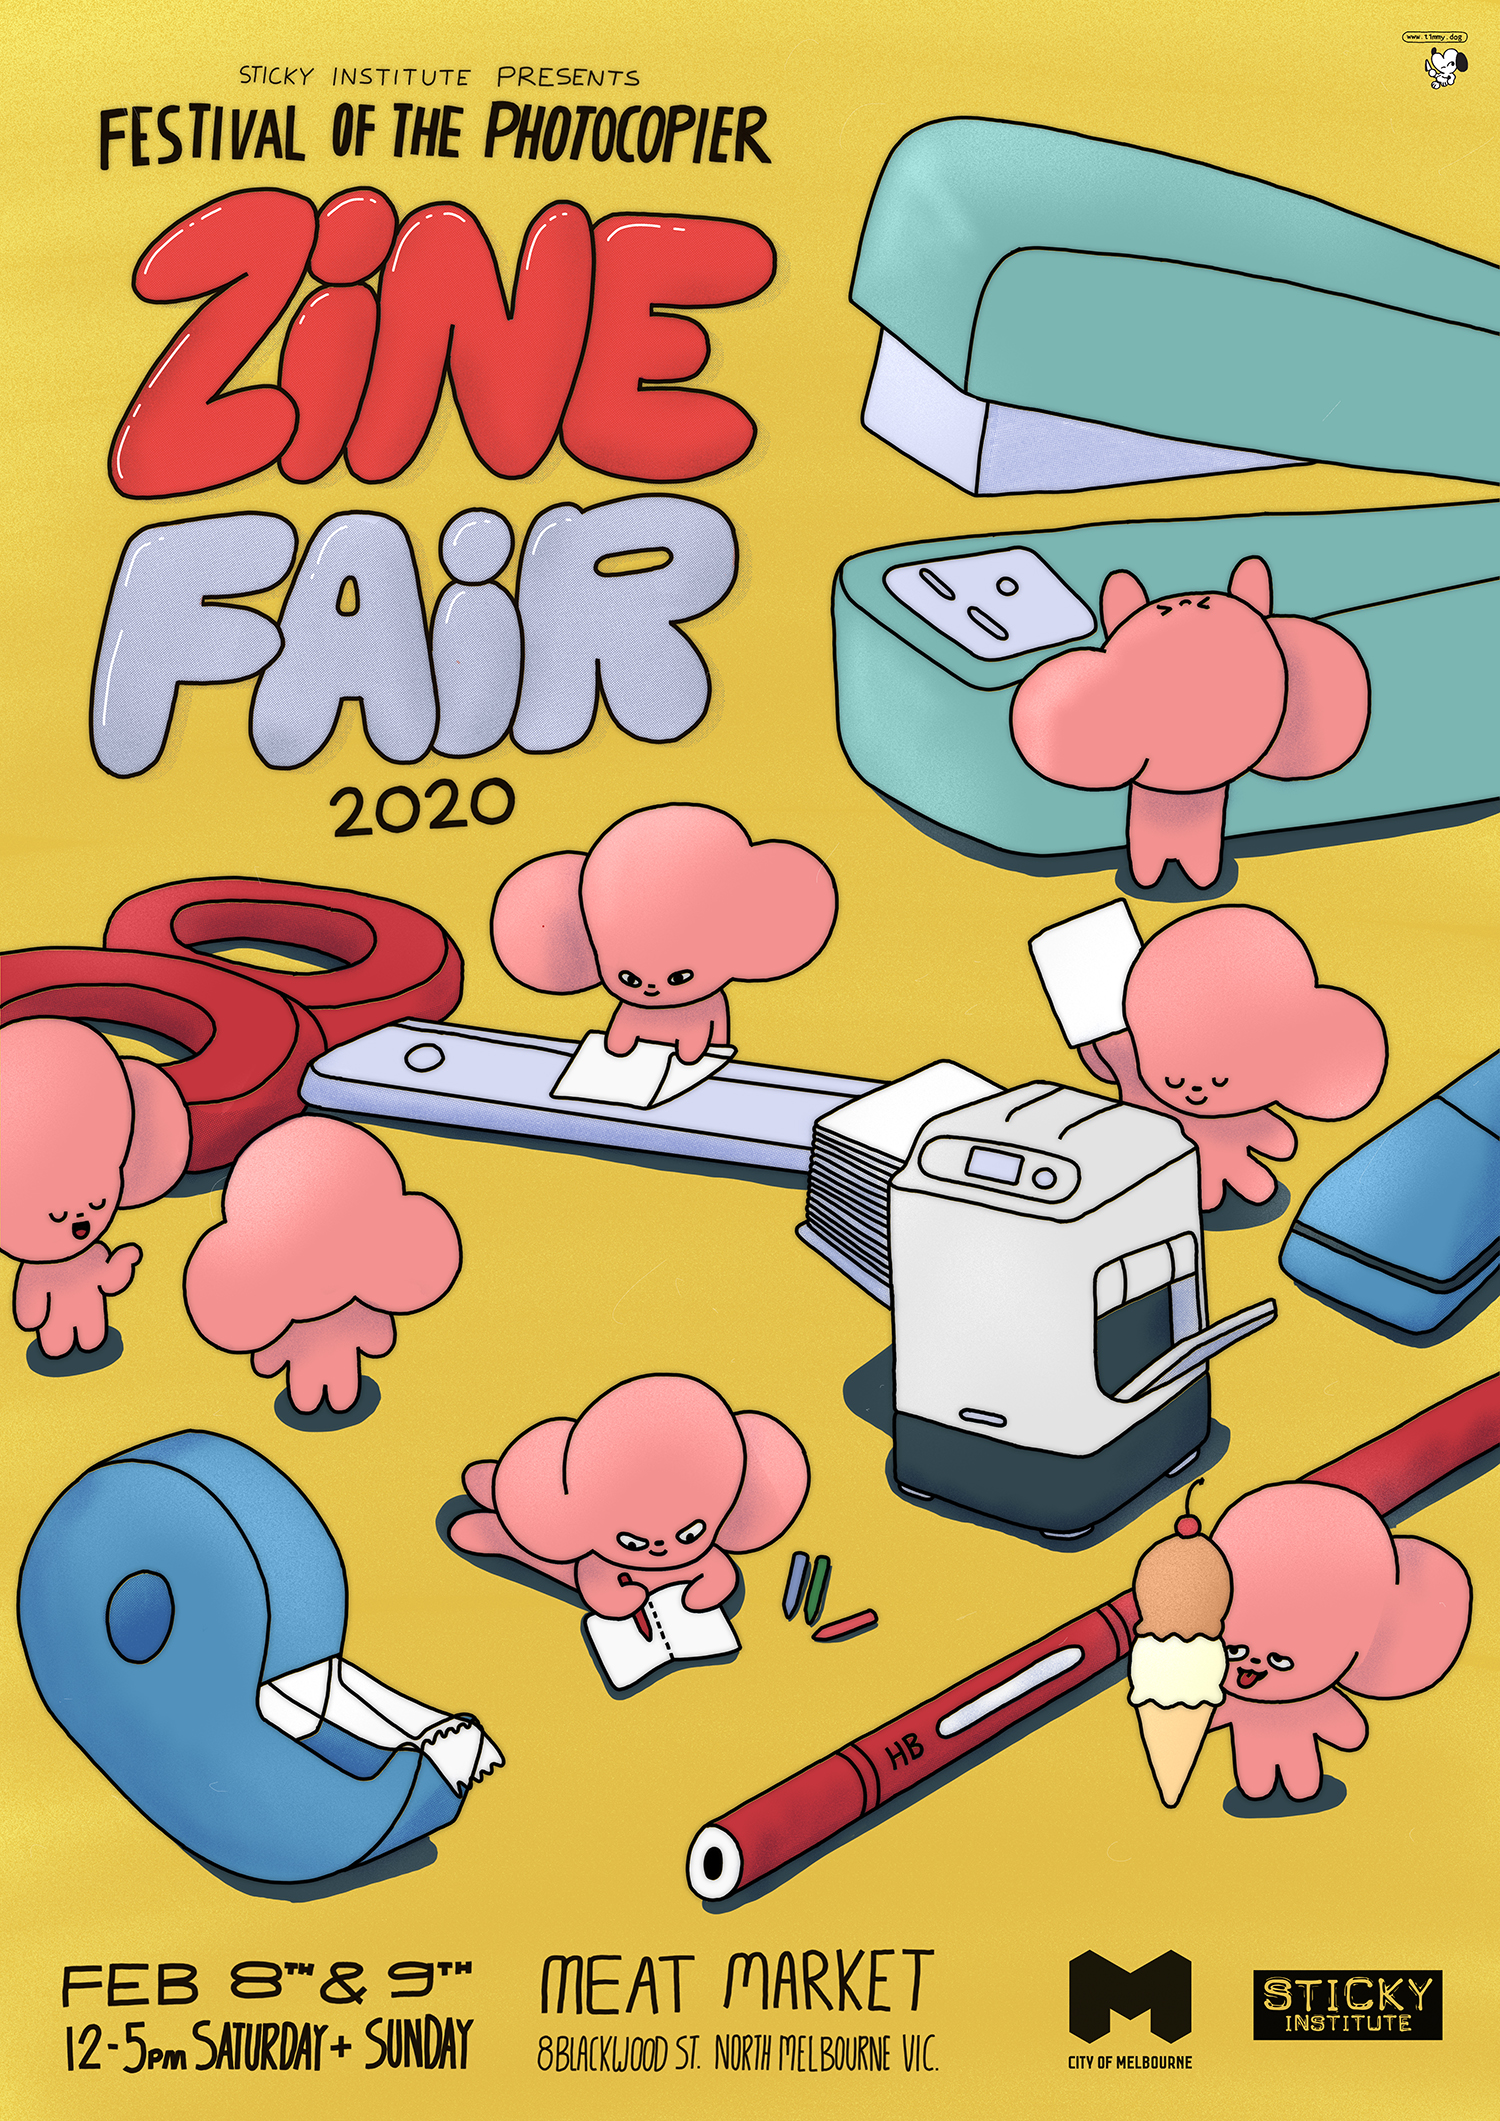 Illustrated poster for the Festival of the Photocopier Zine Fair 202, featuring cute pink rabbit-looking creatures doing a range of activities, including writing, stapling, folding zines etc